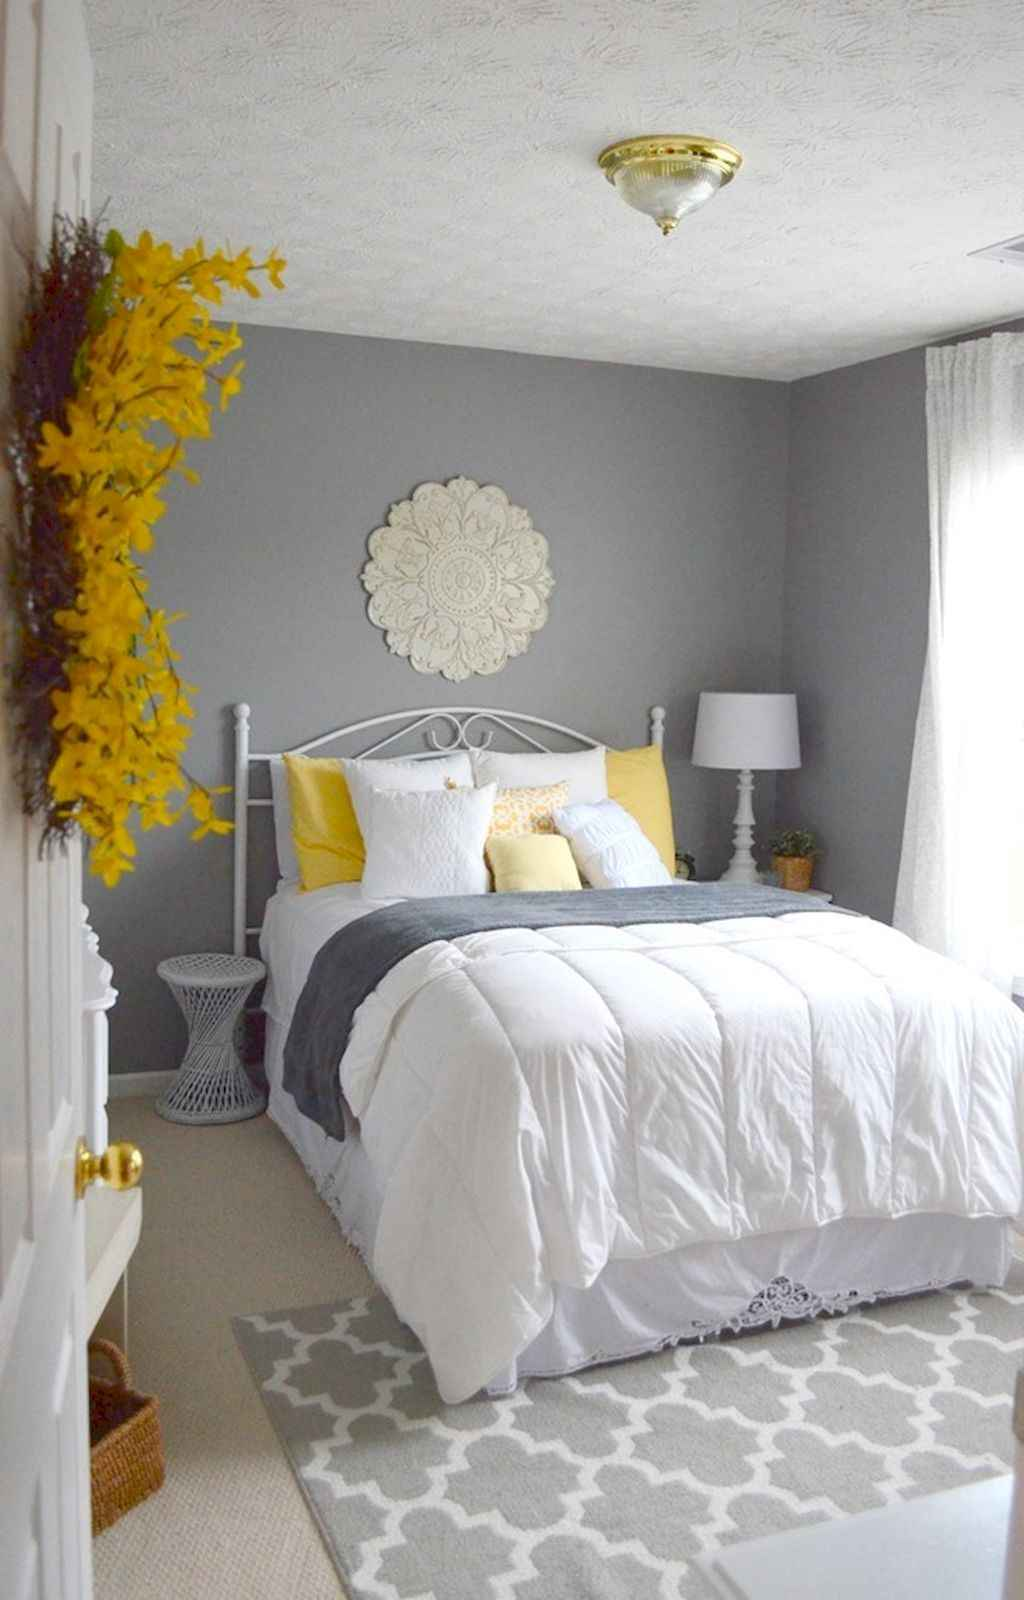 Simply bedroom decoration ideas (1)